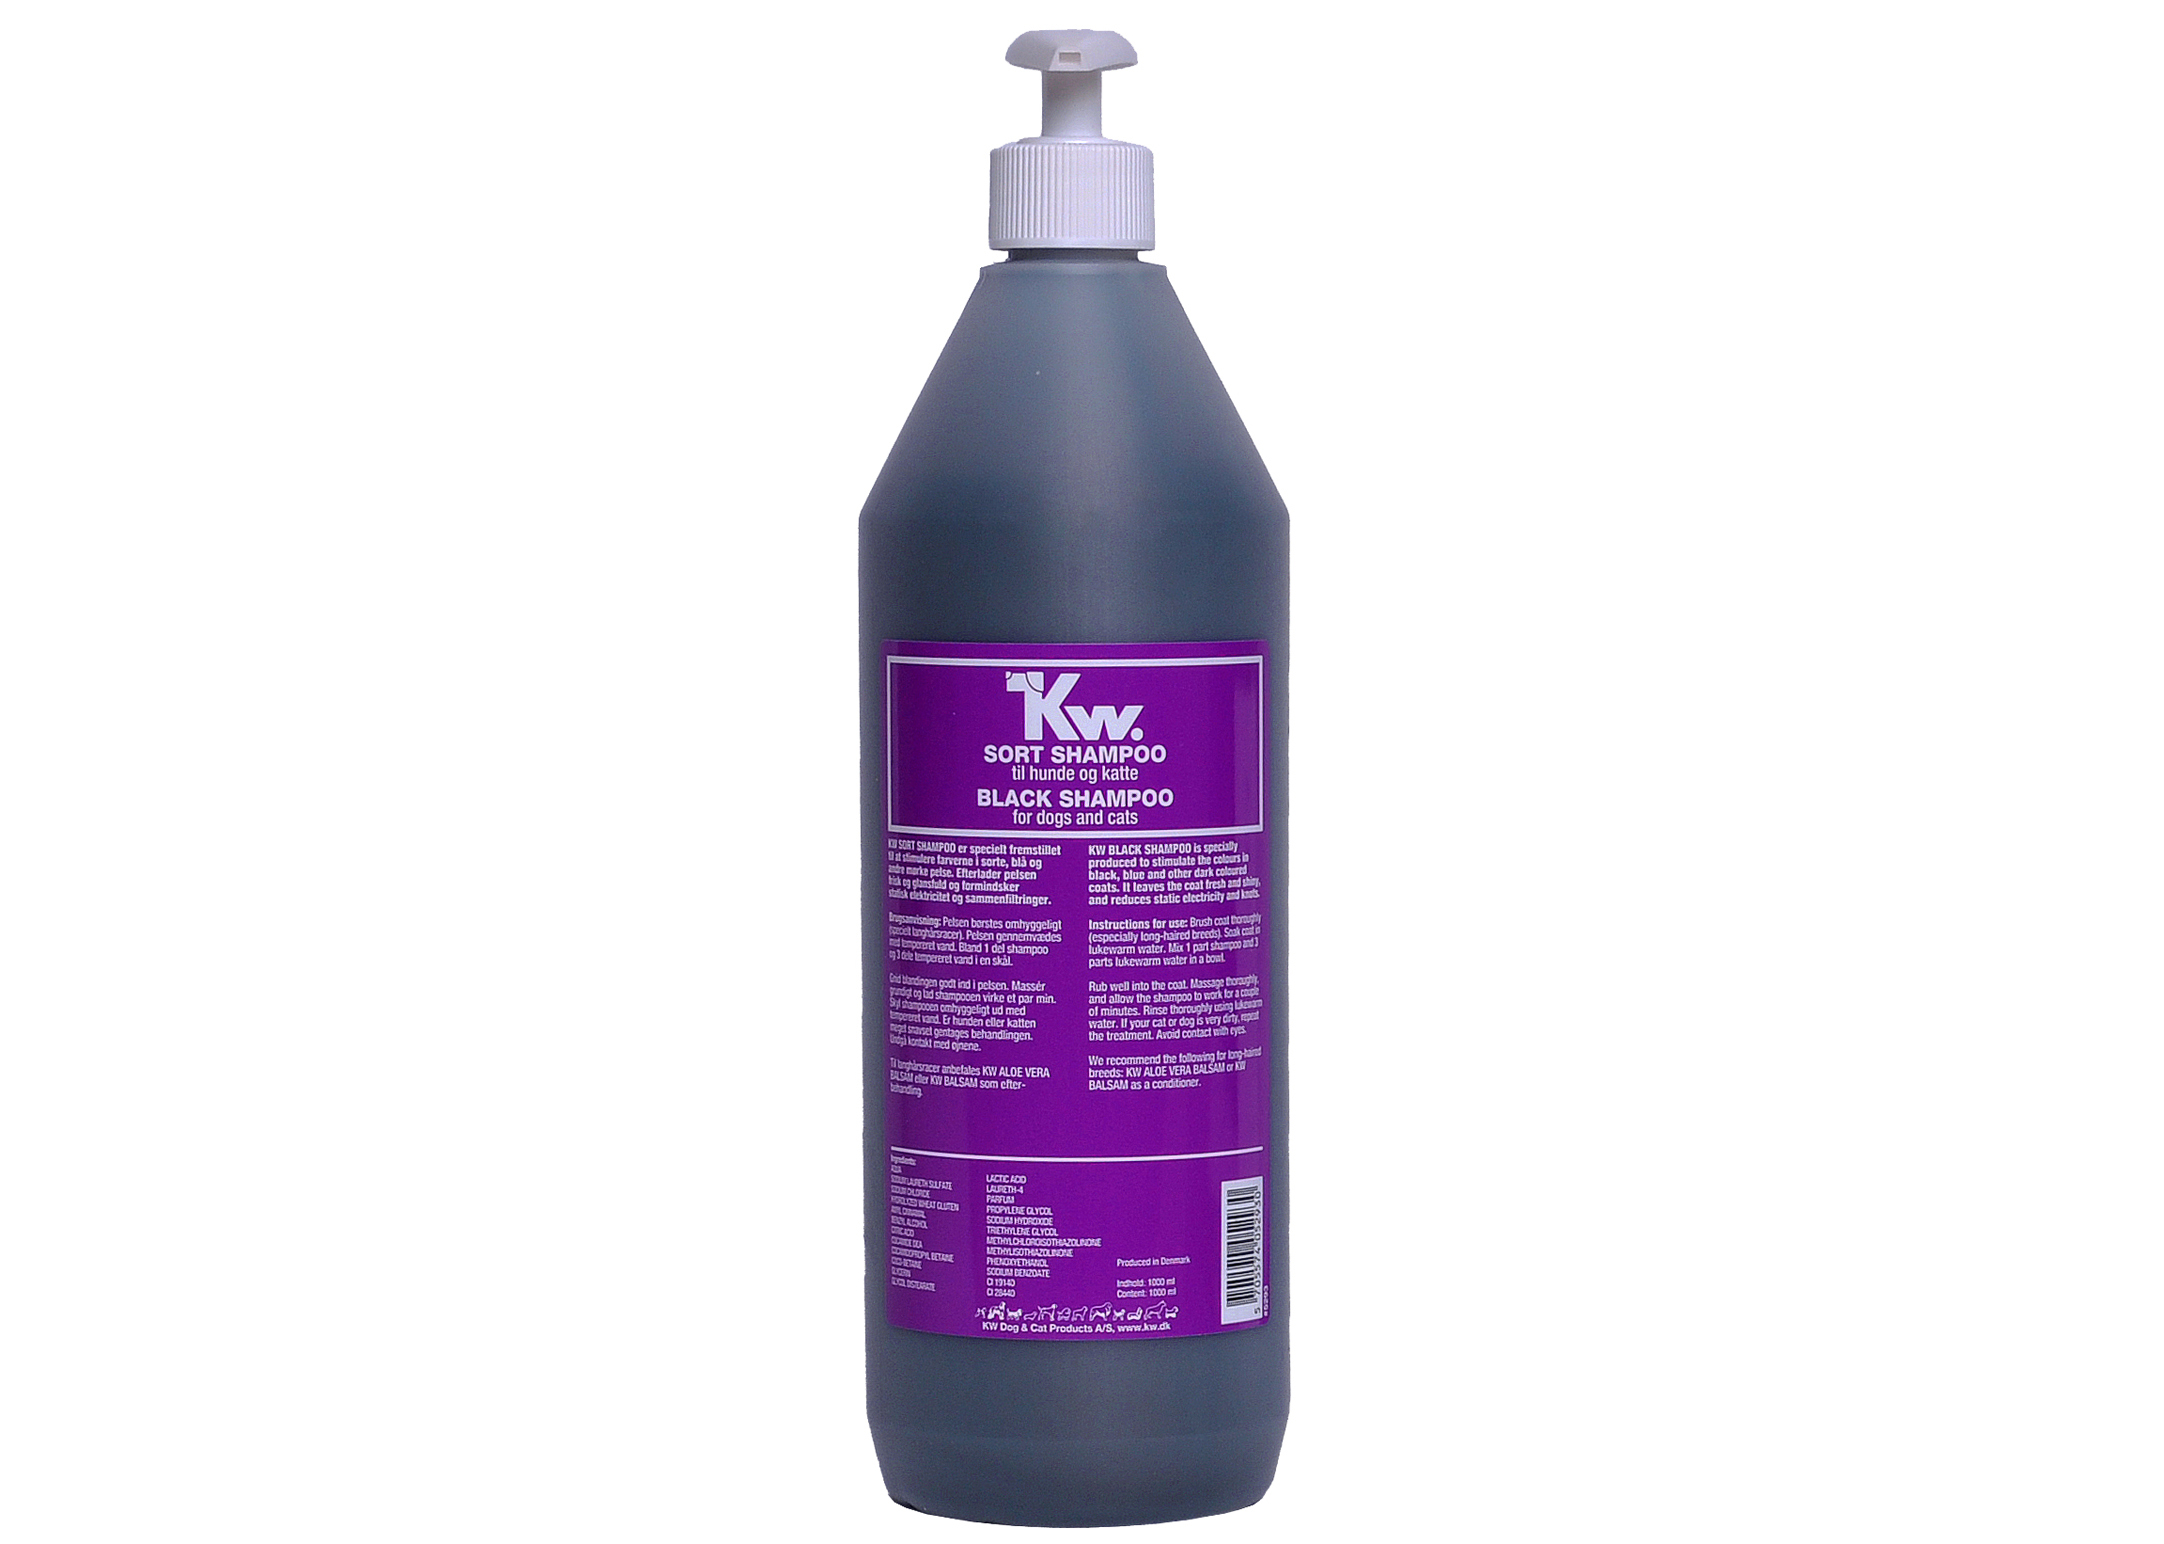 KW Black Shampooing 1L